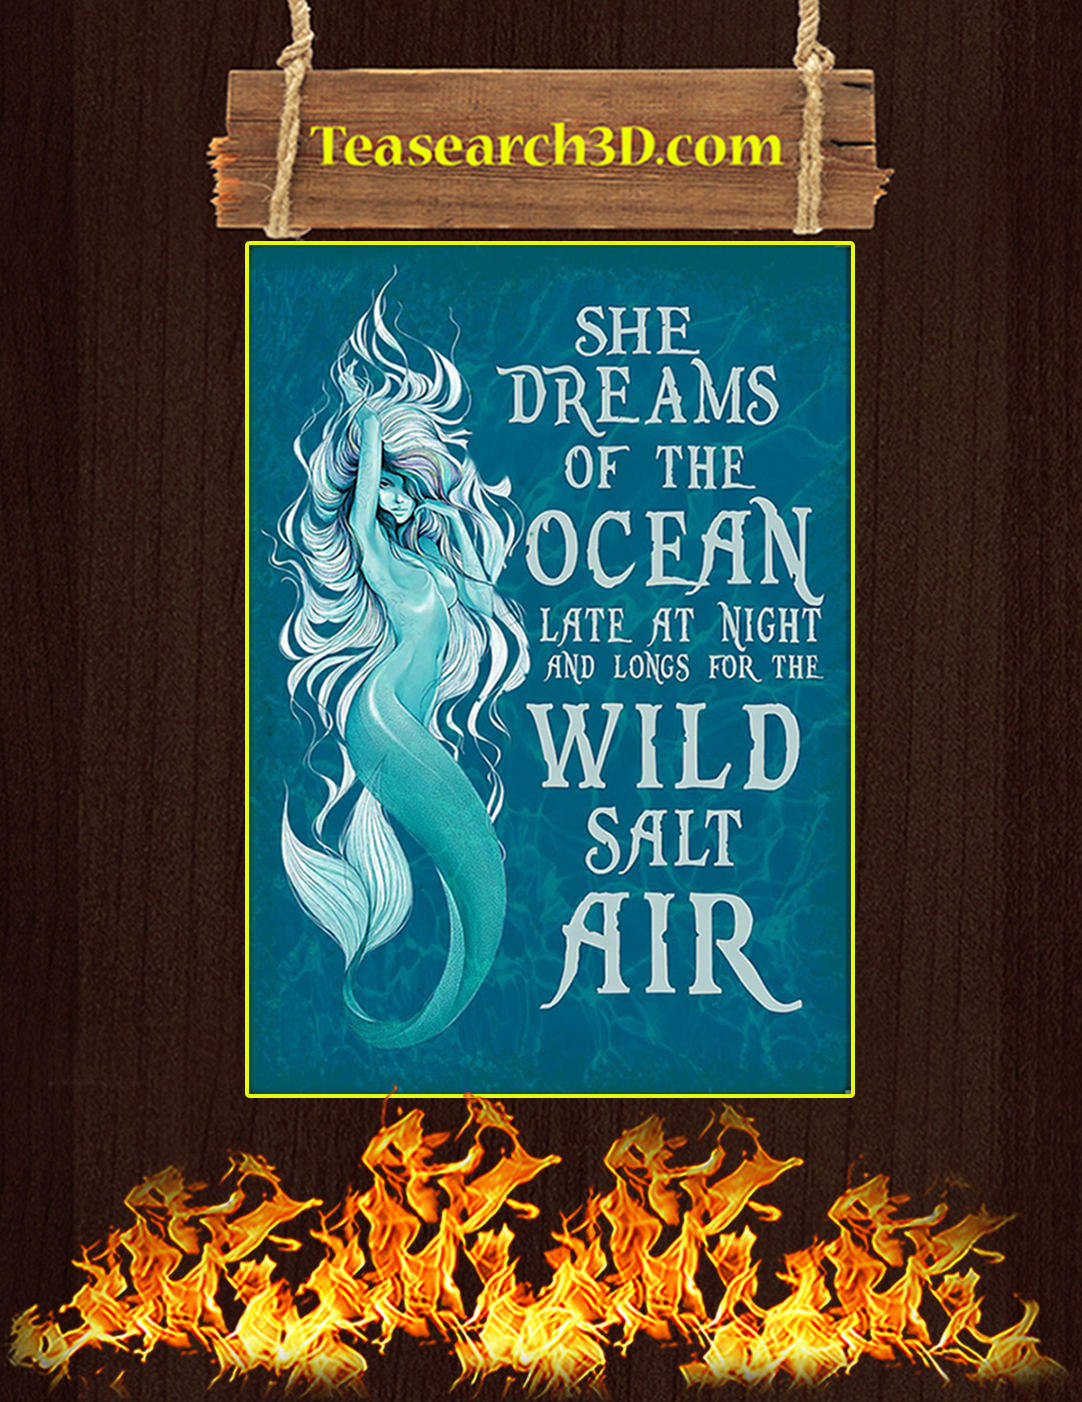 She dreams of the ocean late at night and longs for the wild salt air poster A2